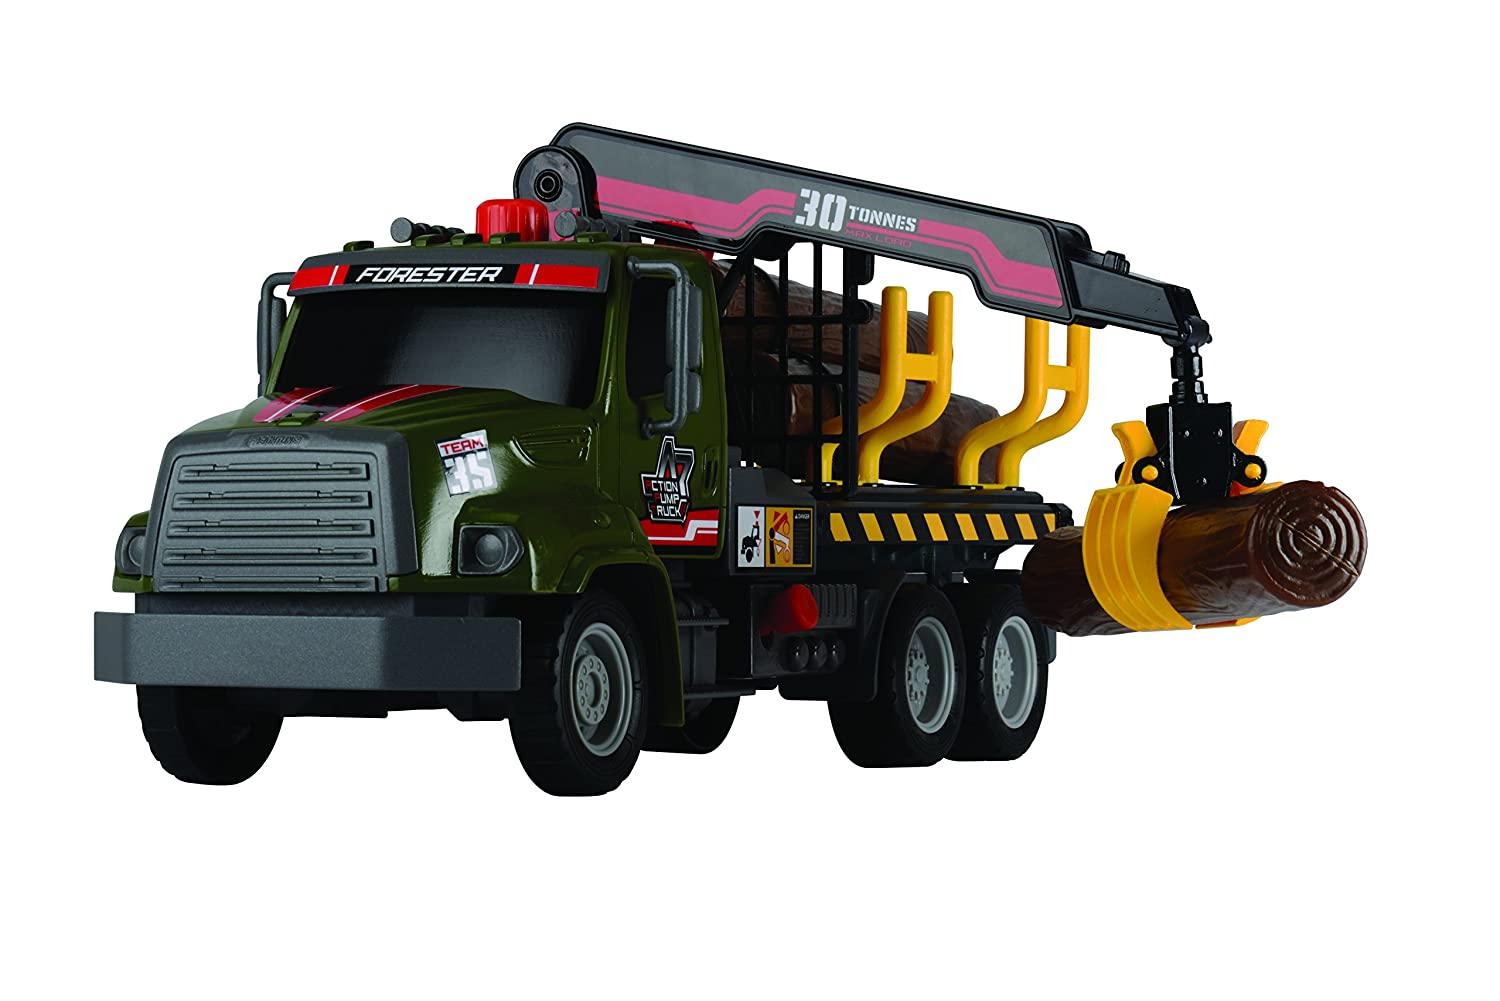 20 380 6001 AMU Dickie Toys 12 Air Pump Action Logging Truck Vehicle Dickie Imports